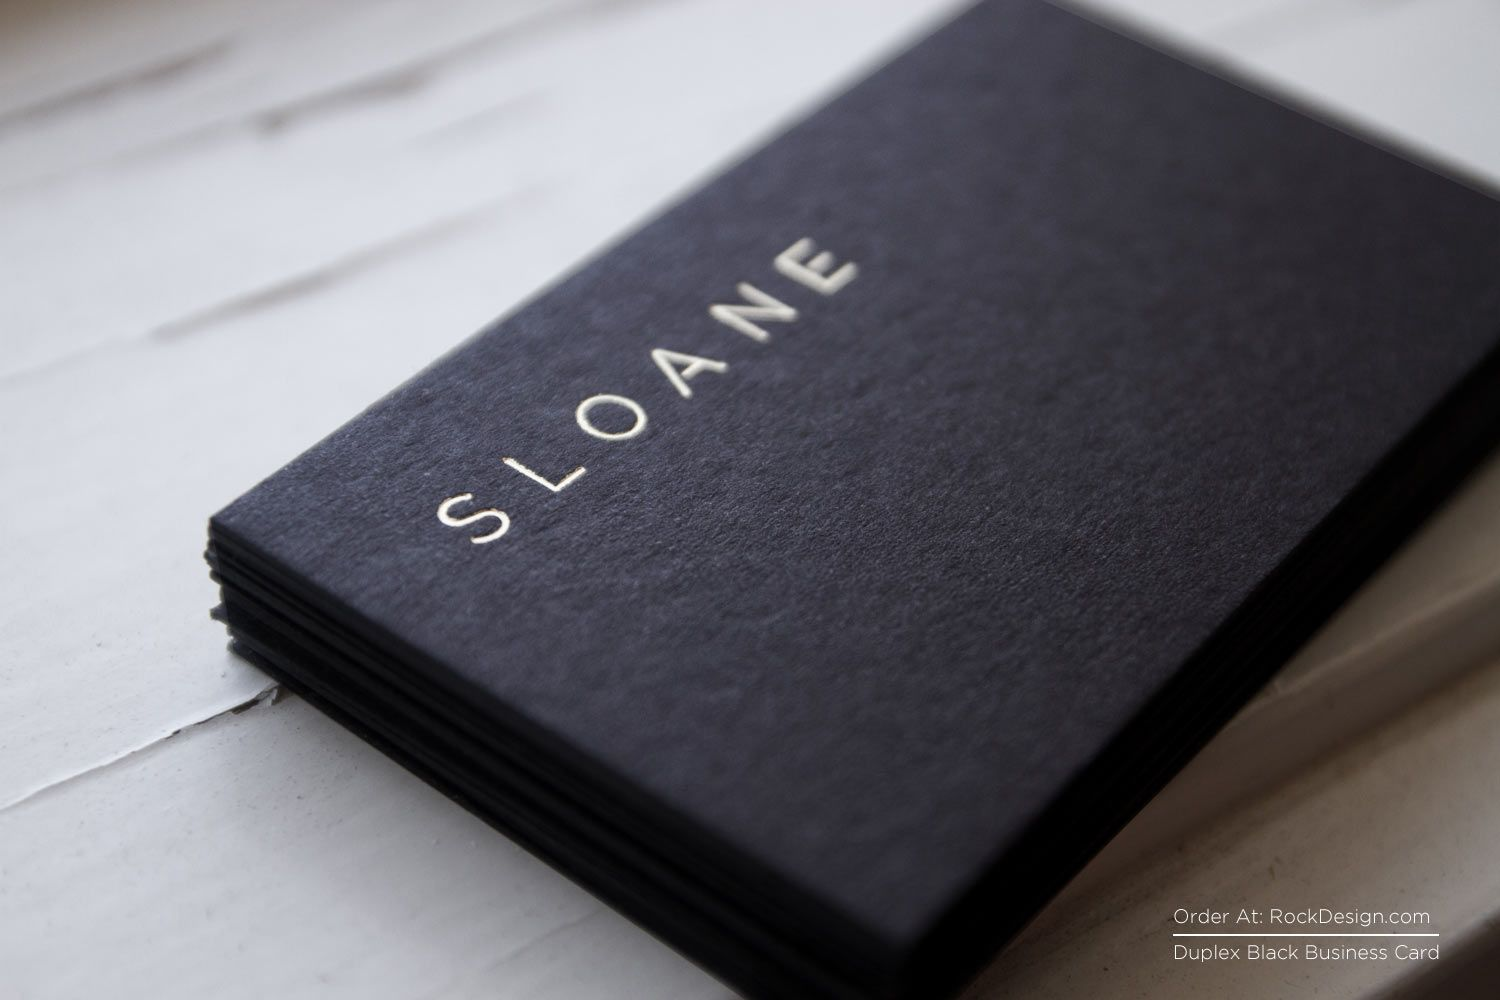 RockDesign.com | High End Business Cards | Black Business Cards ...